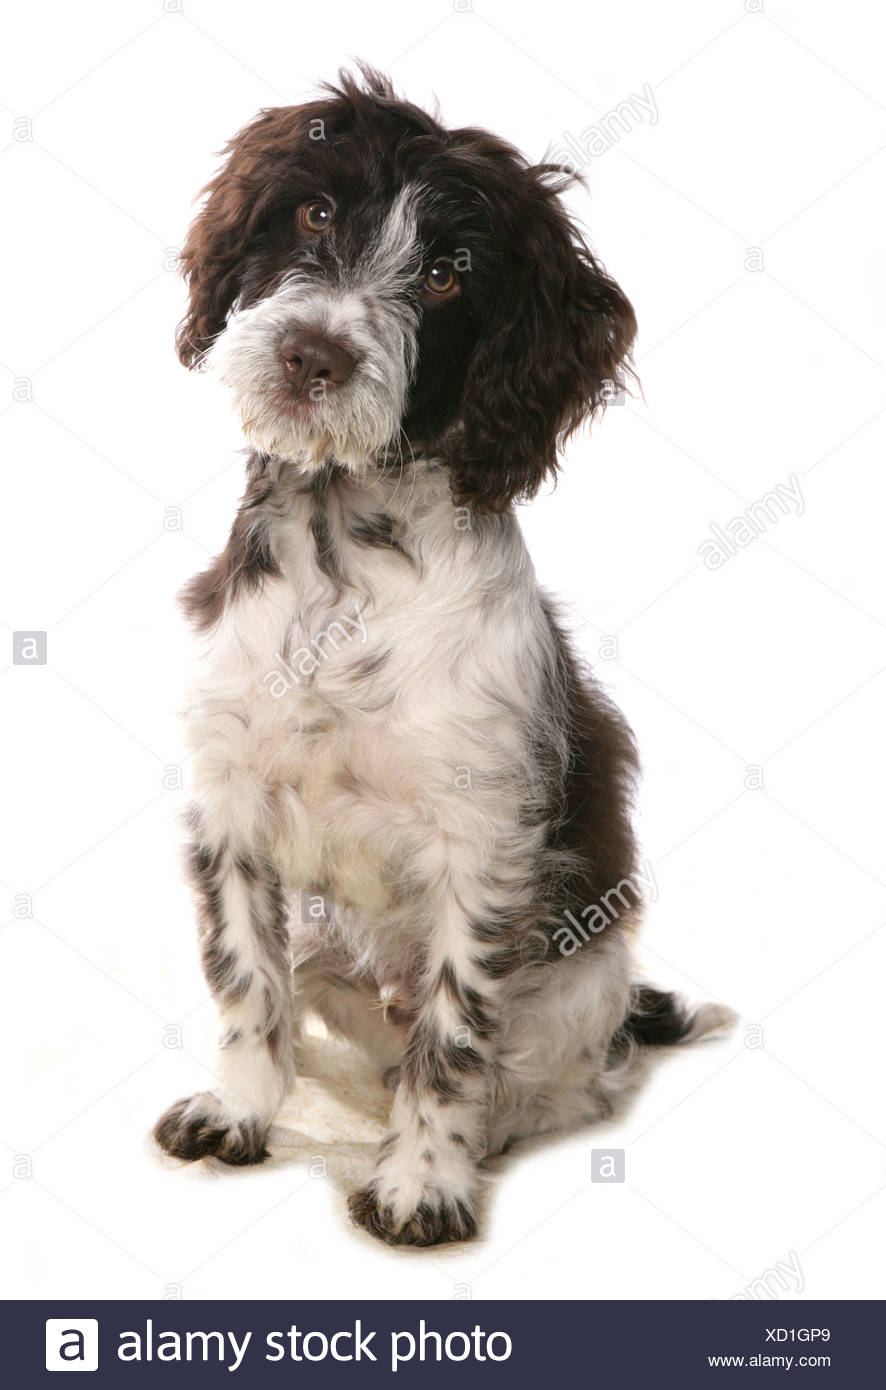 Domestic Dog, Cockerpoo (Cocker Spaniel x Poodle), puppy, sitting - Stock Image